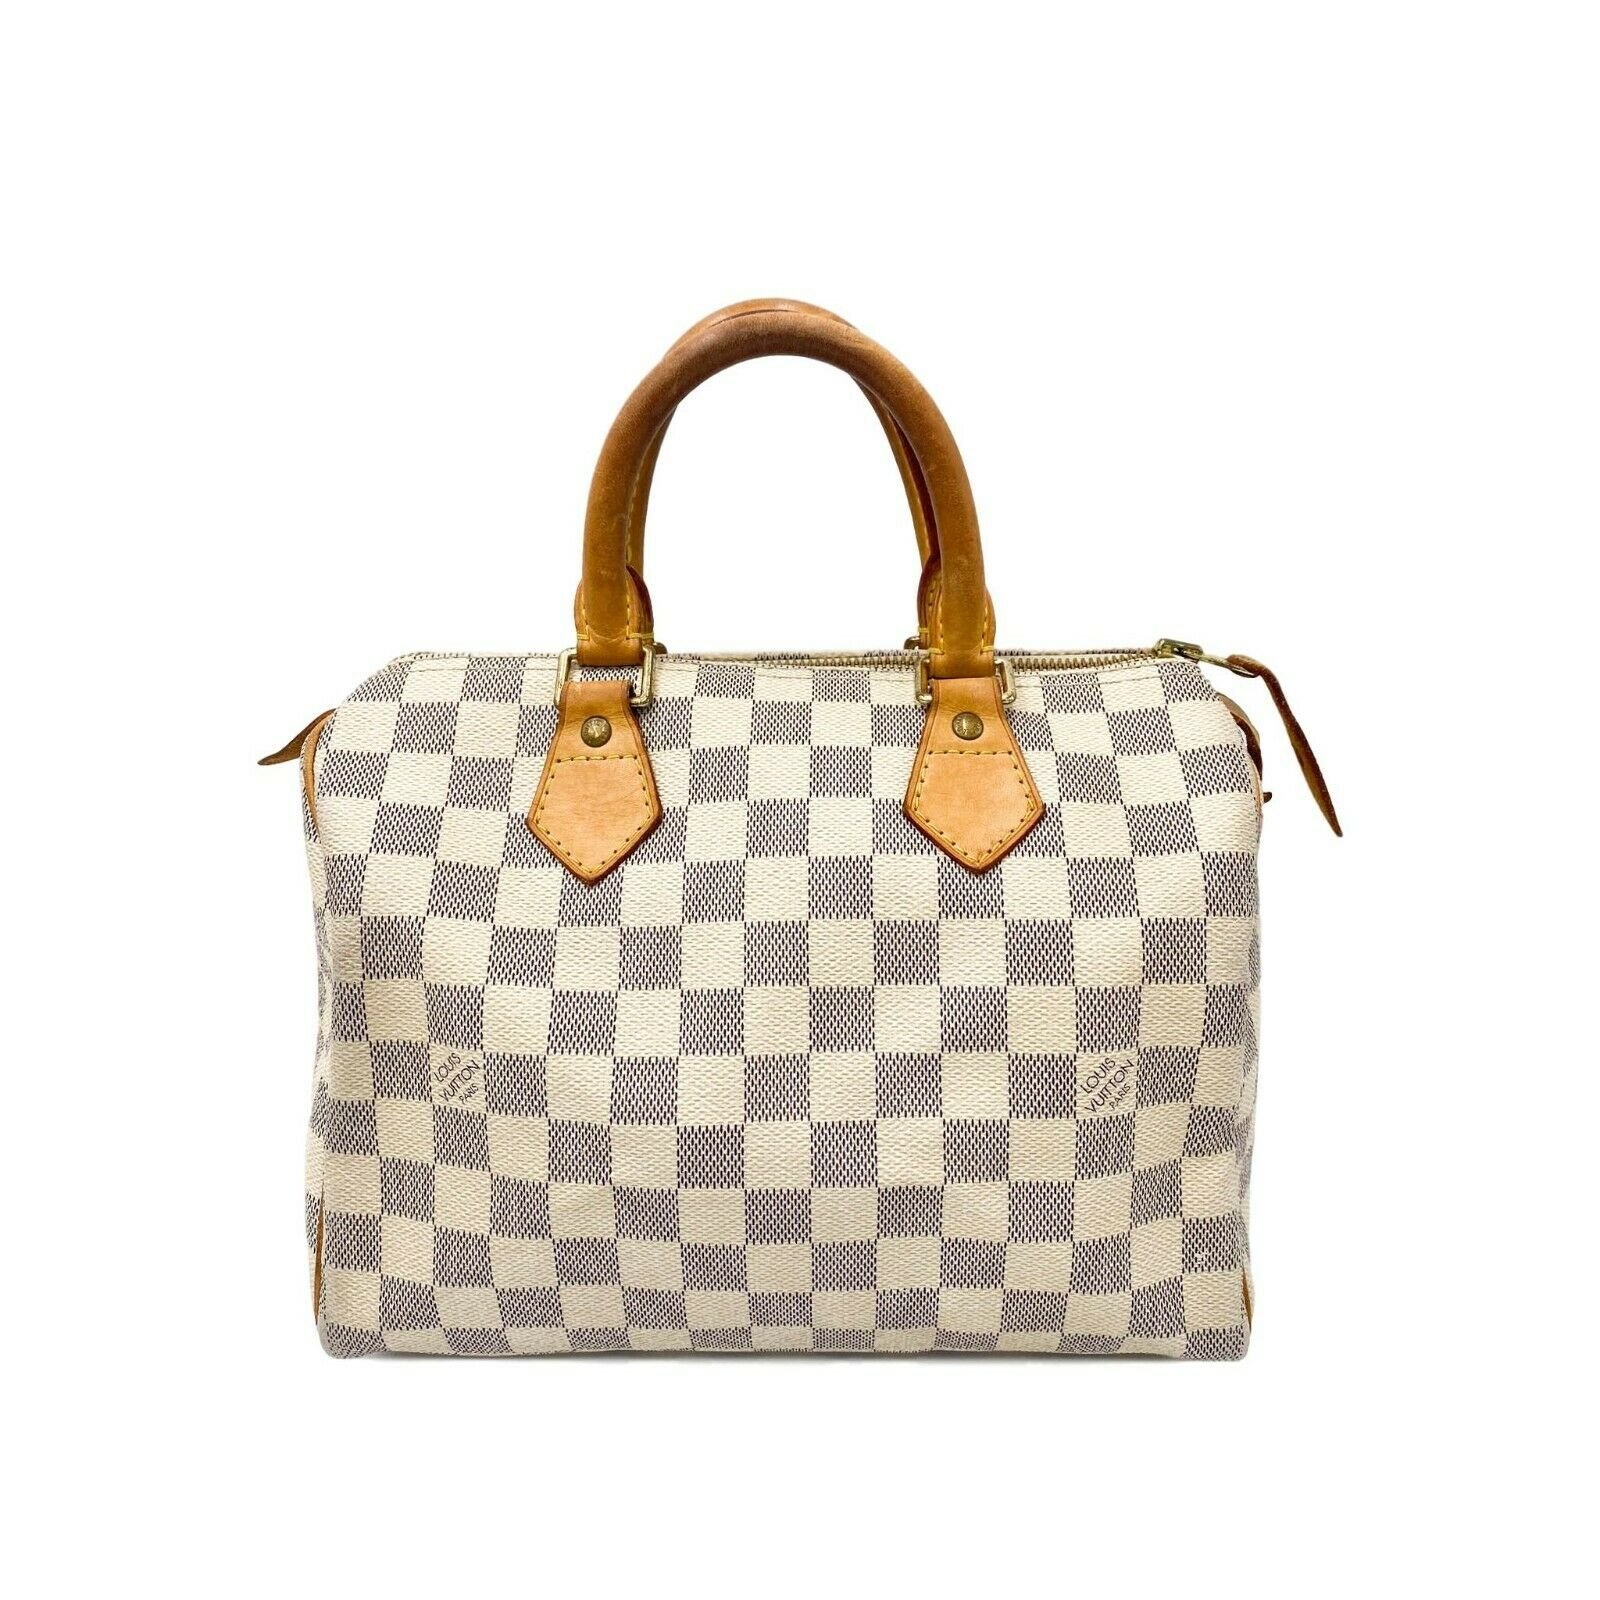 Louis Vuitton Speedy Damier Azur 25 White Canvas Satchel Doctor